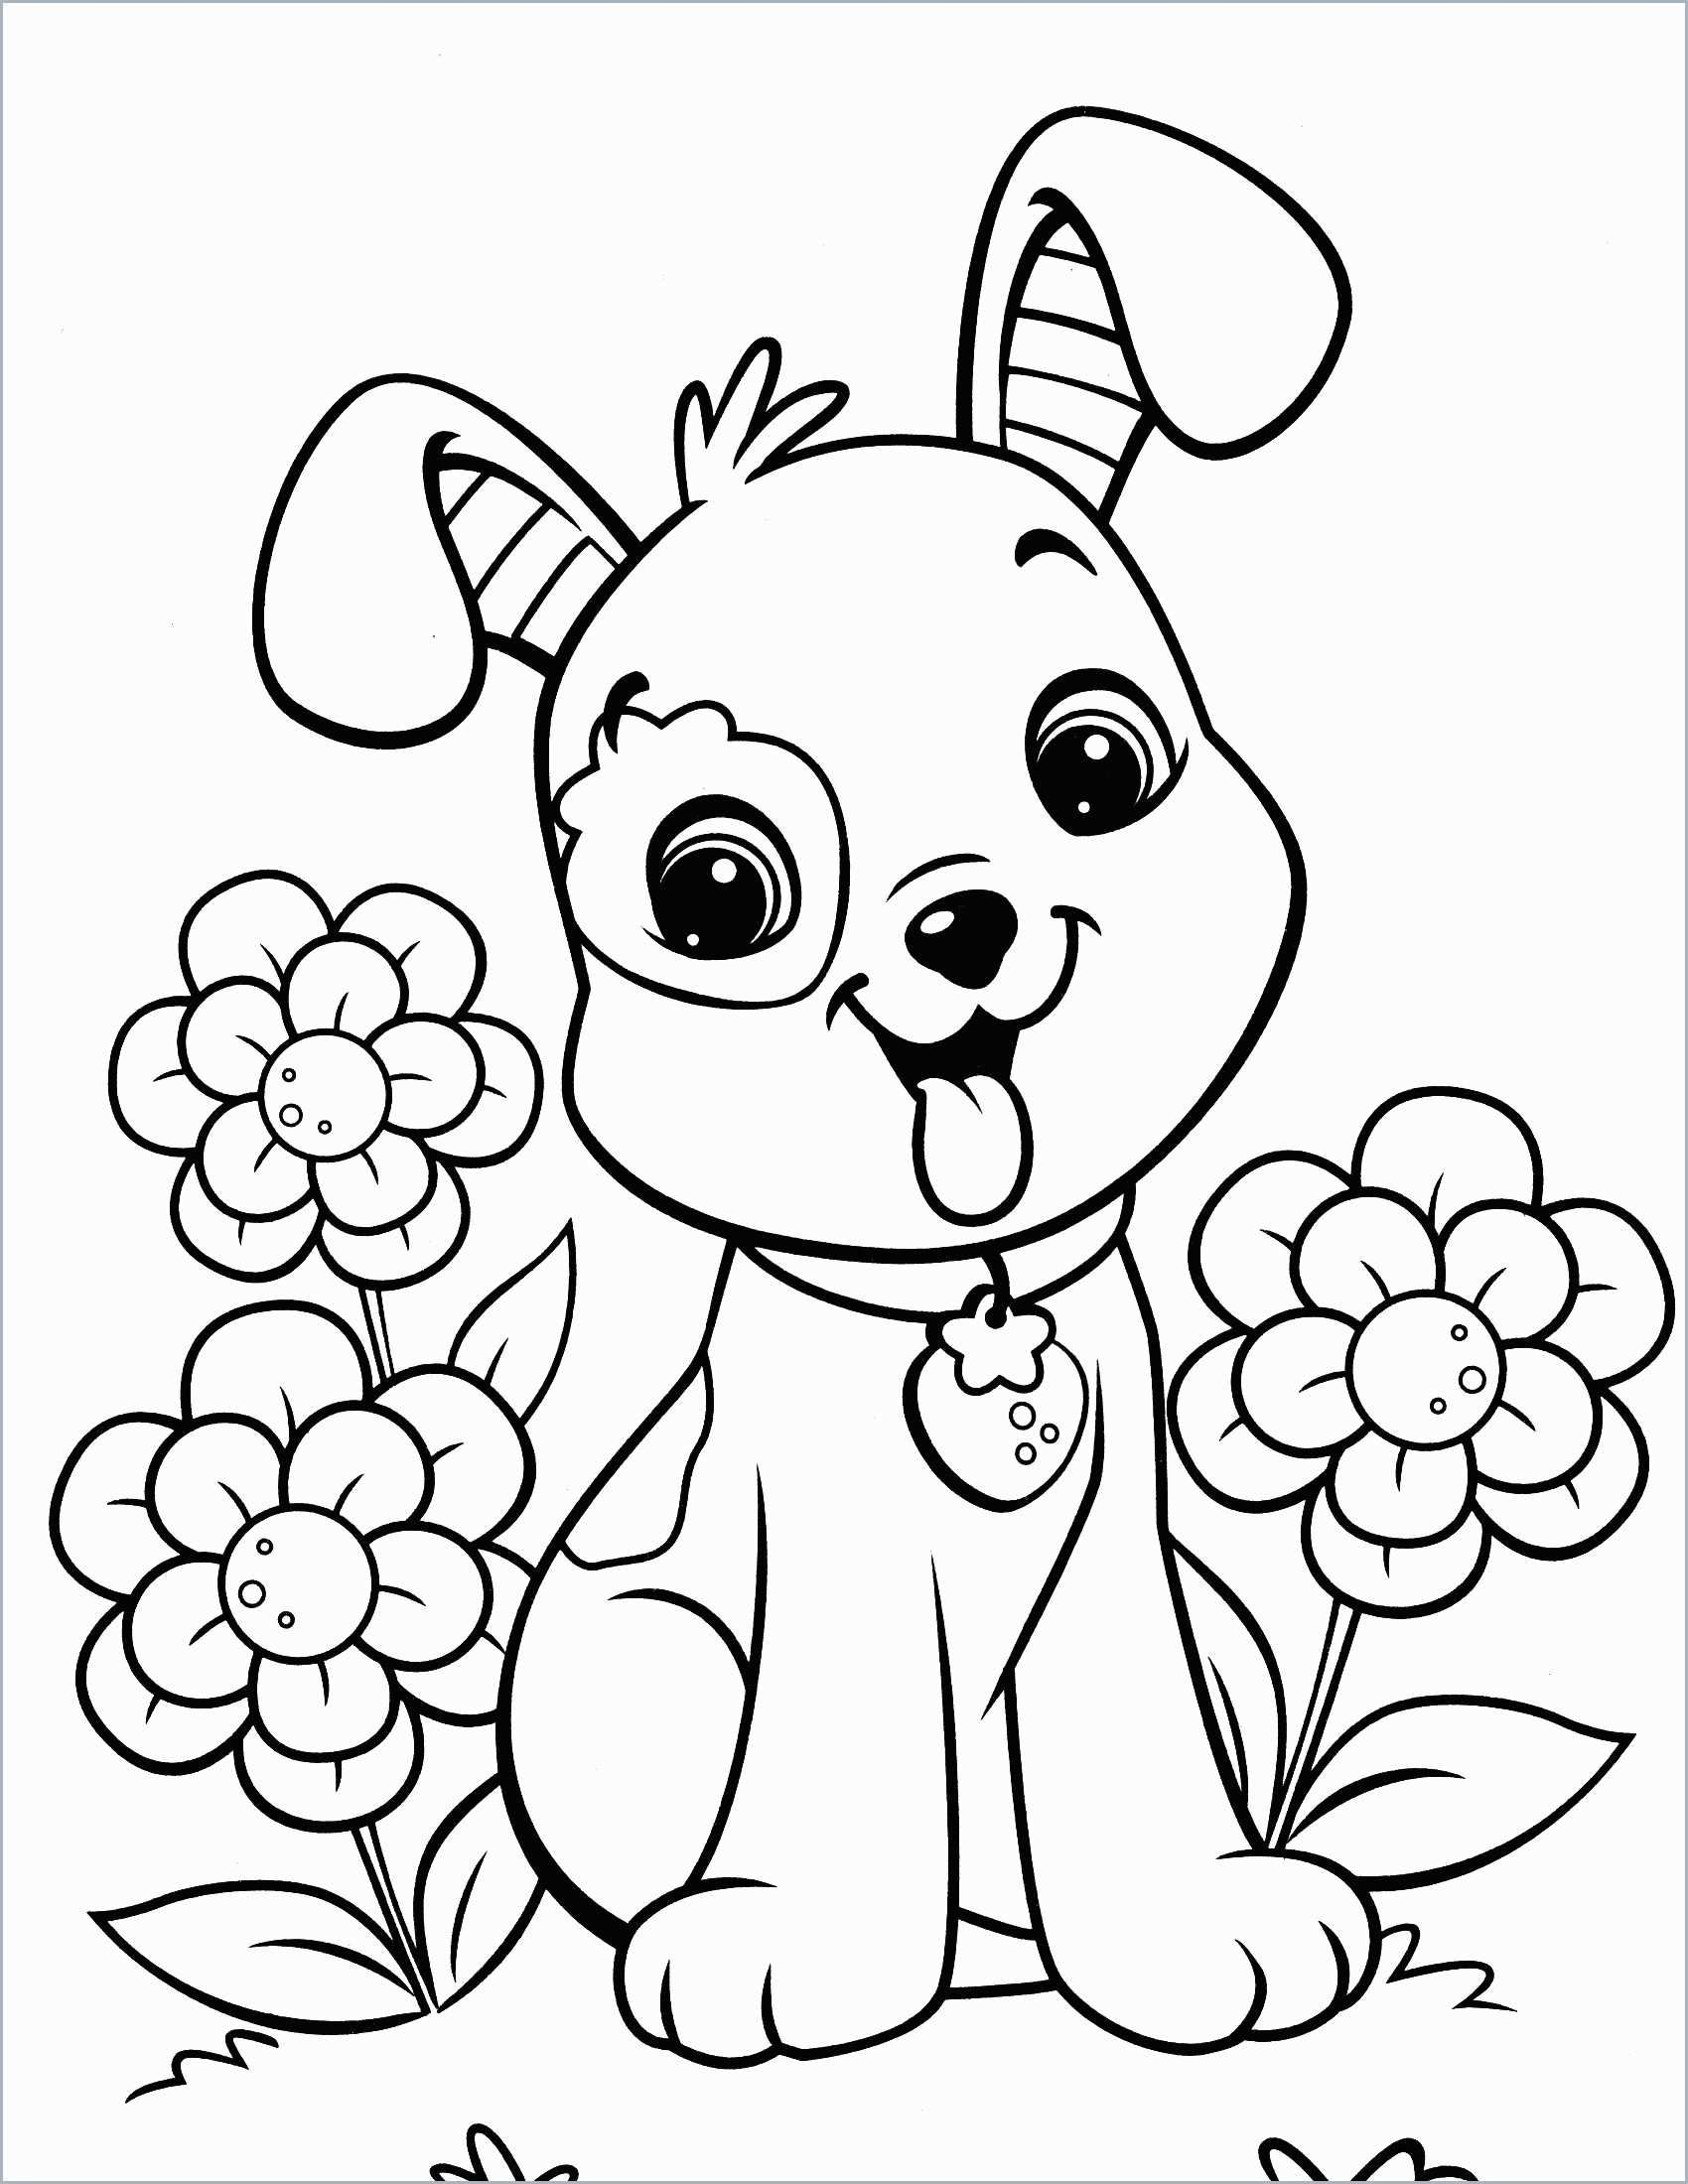 Printable Puppy Coloring Pages Ideas Free Coloring Sheets Puppy Coloring Pages Dog Coloring Page Cute Coloring Pages